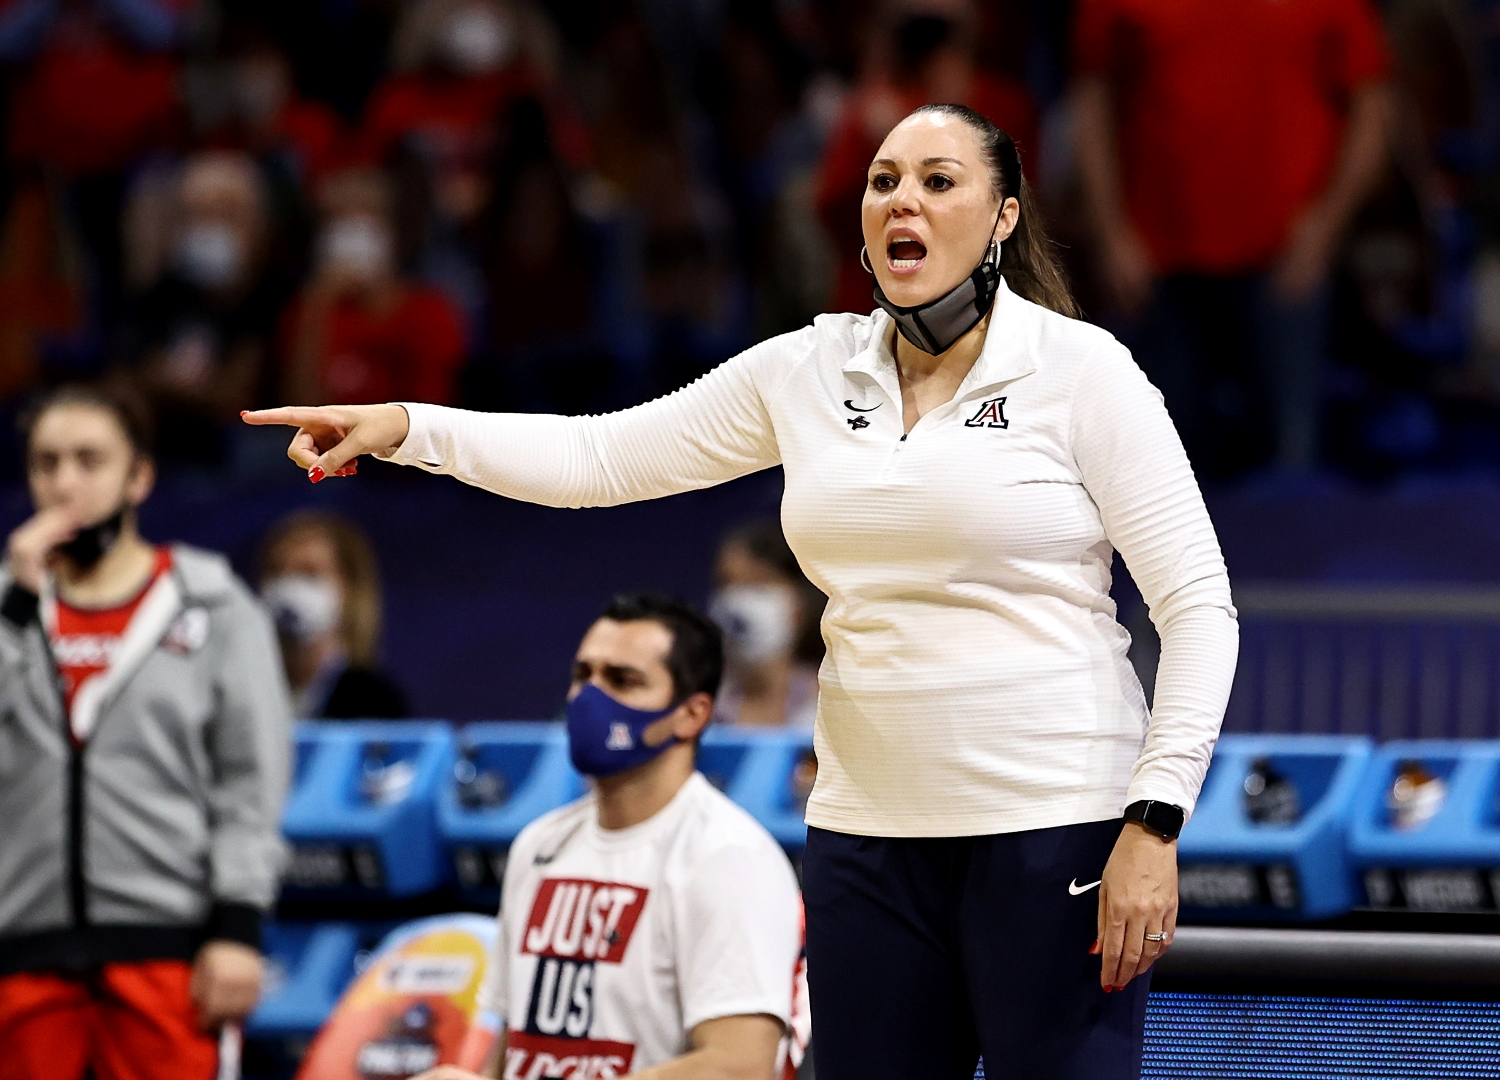 Arizona Wildcats head coach Adia Barnes directs her players during the national title game against Stanford.